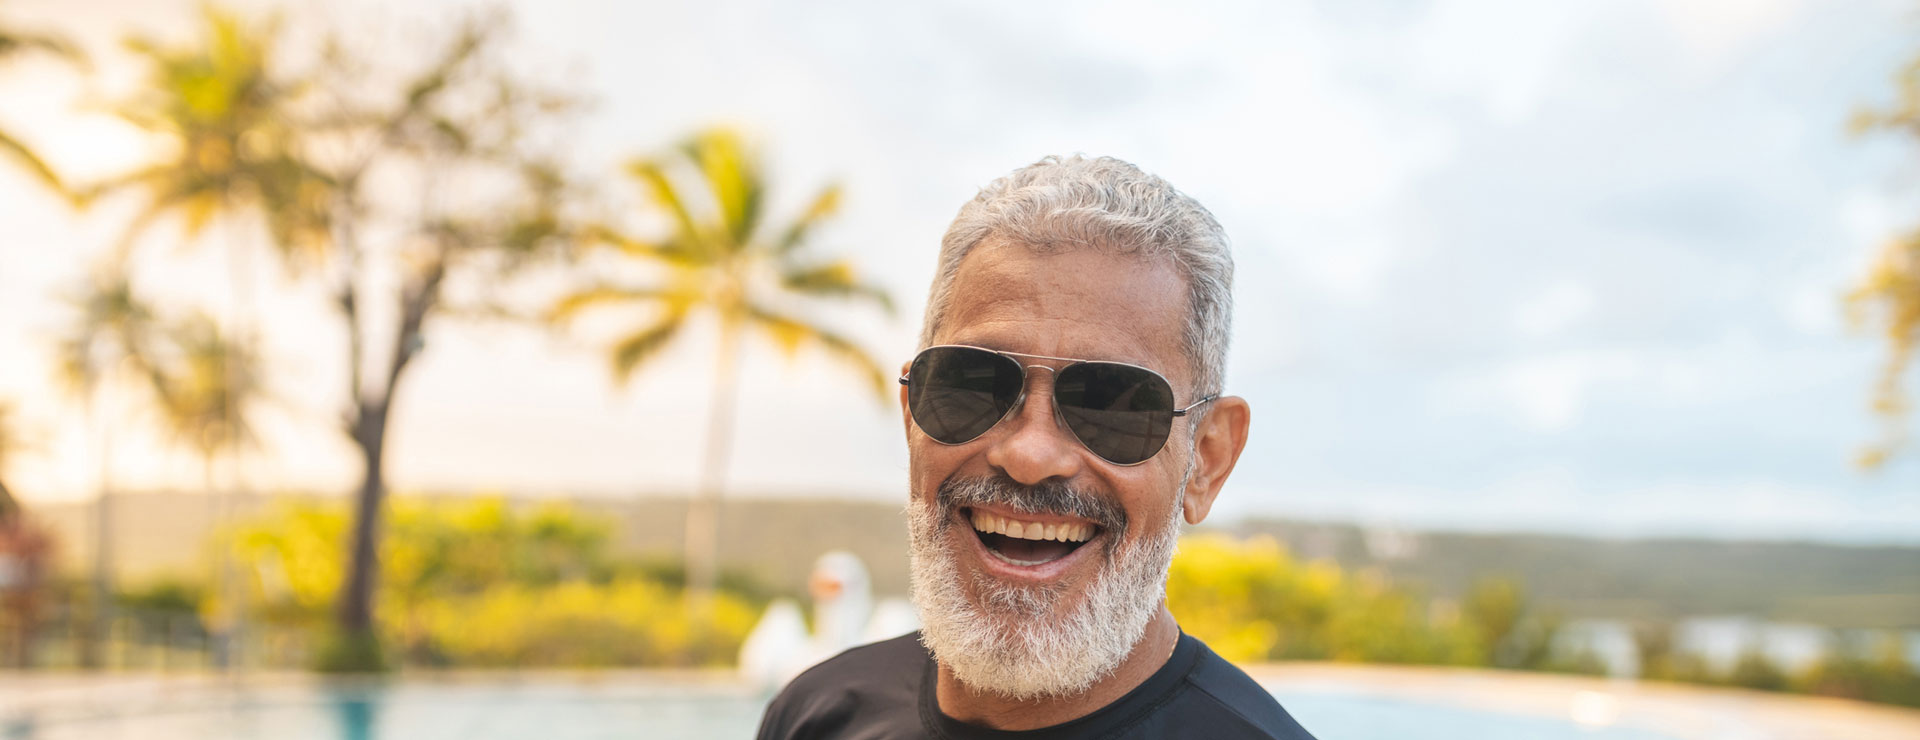 A senior man smiles outdoors while wearing sunglasses